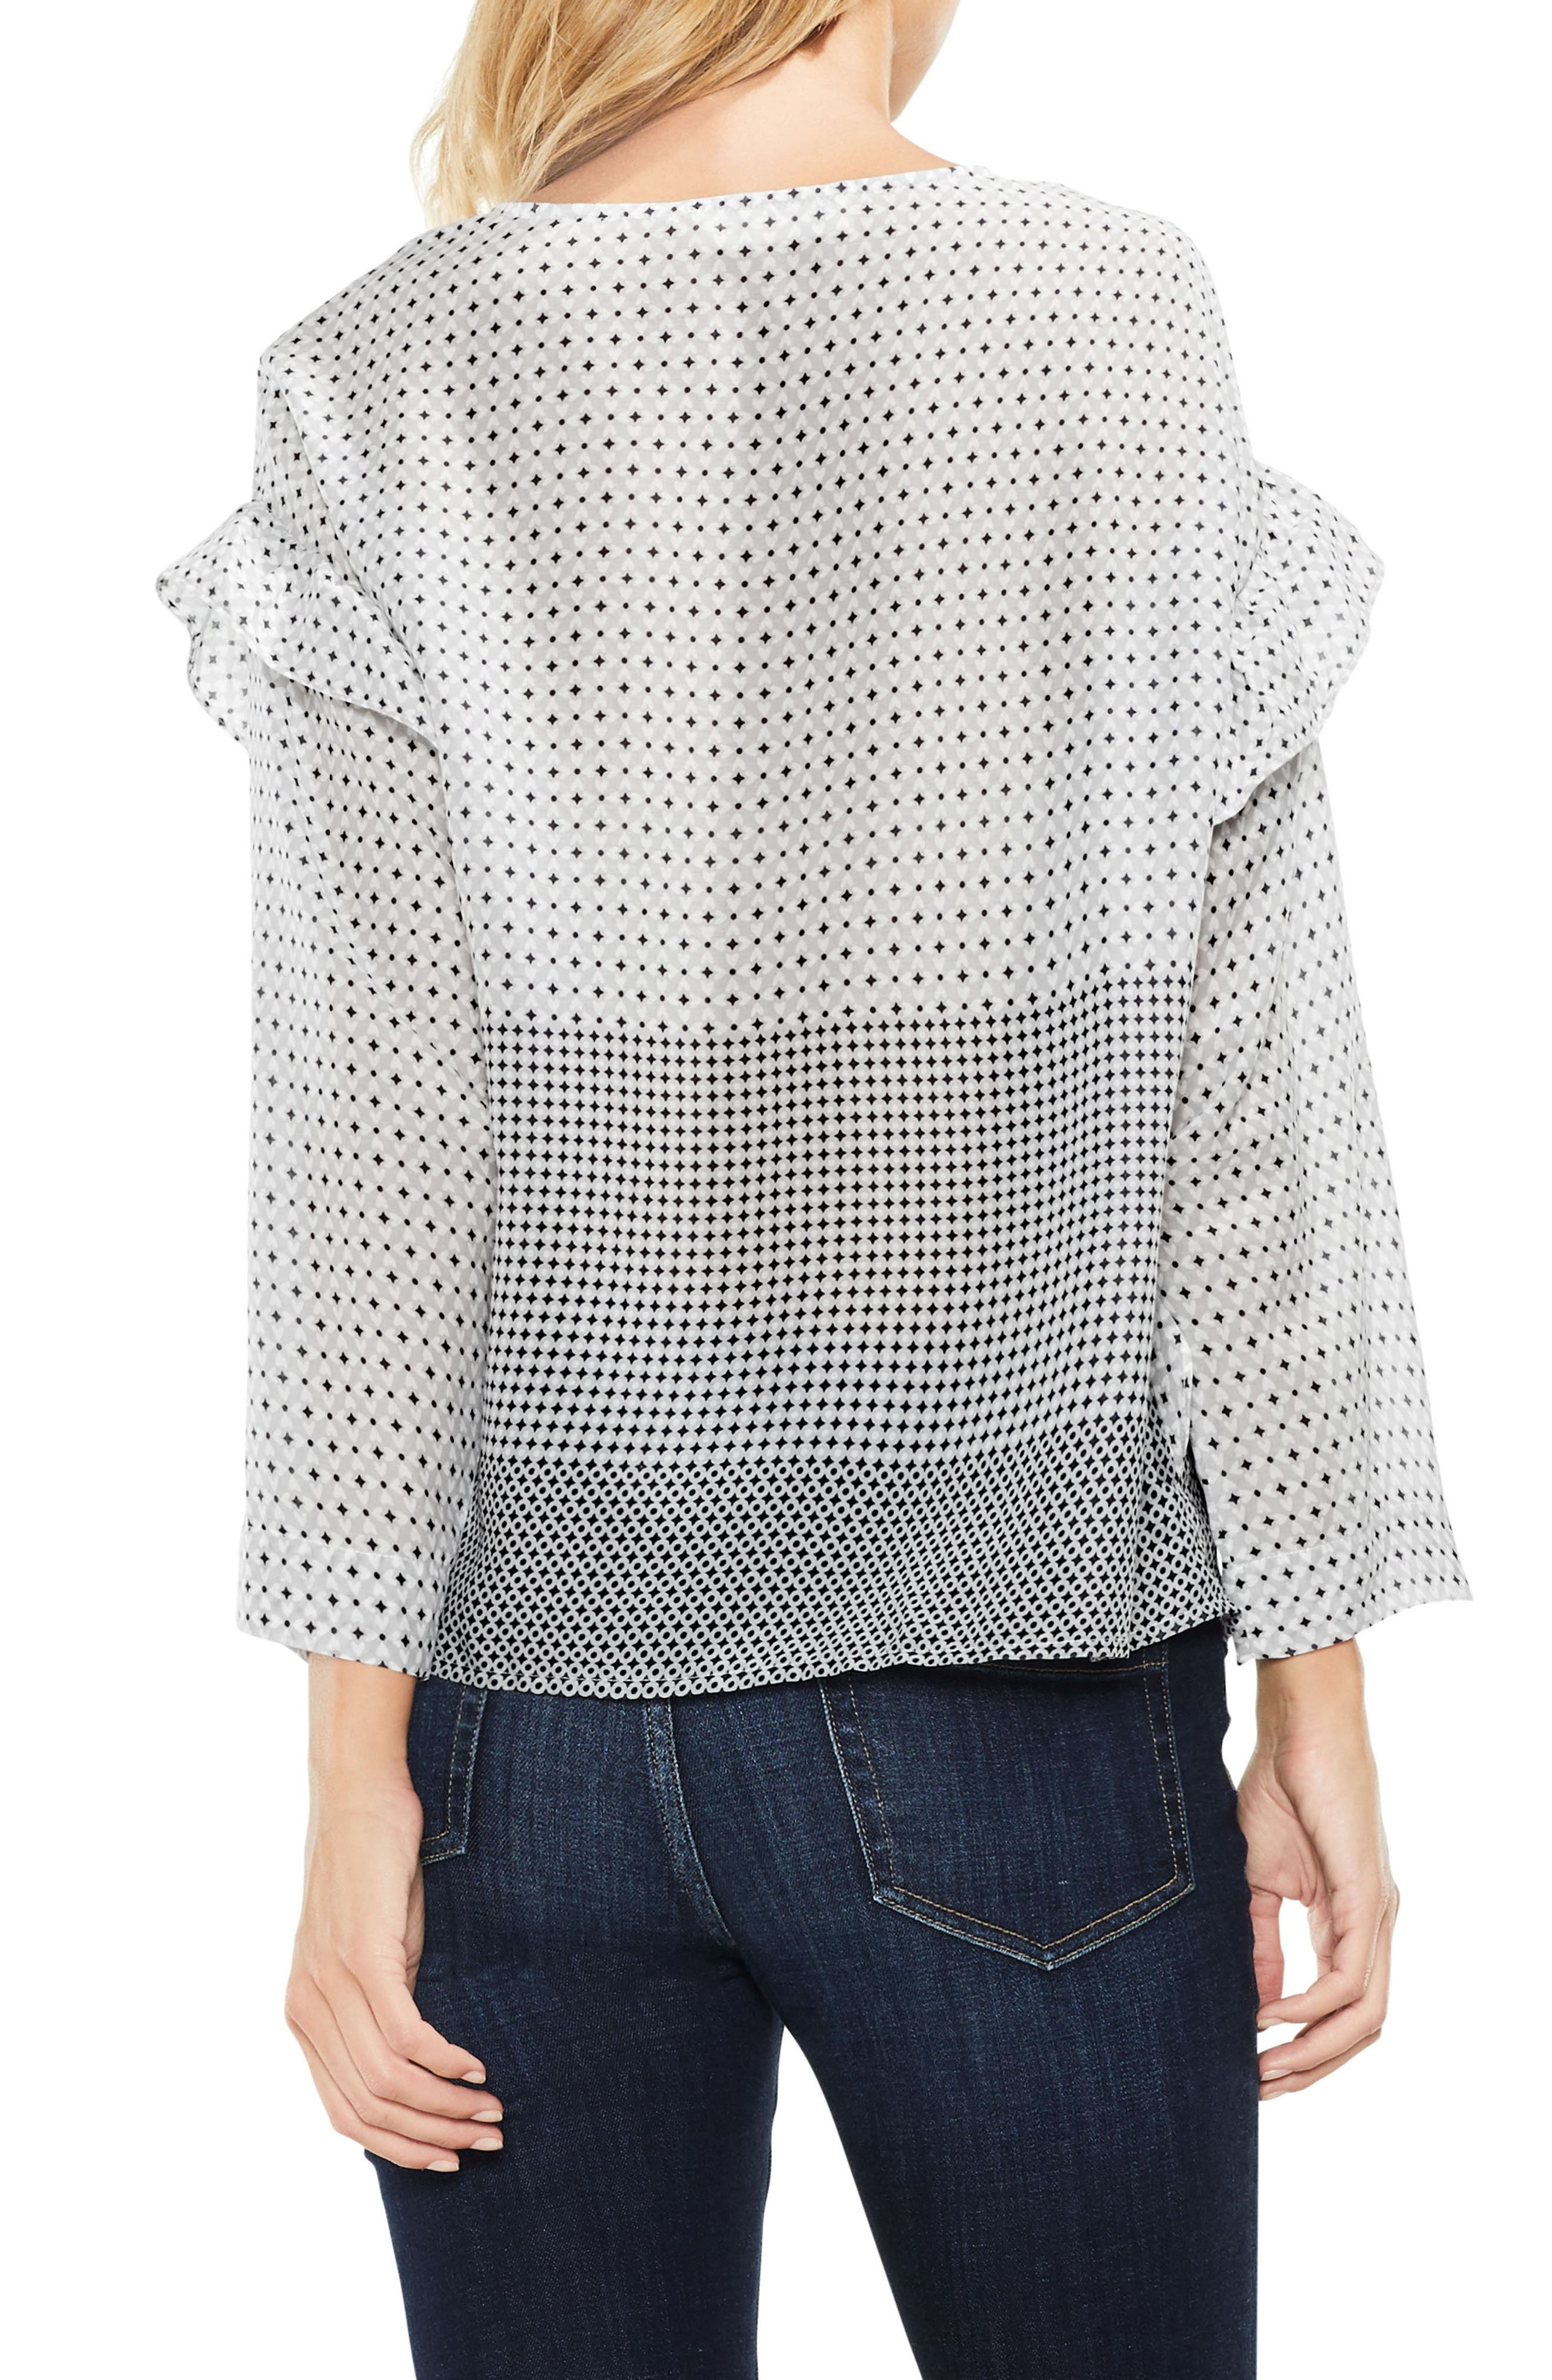 Two by VInce Camuto Quiet Tile Border Ruffle Top,                             Alternate thumbnail 2, color,                             063